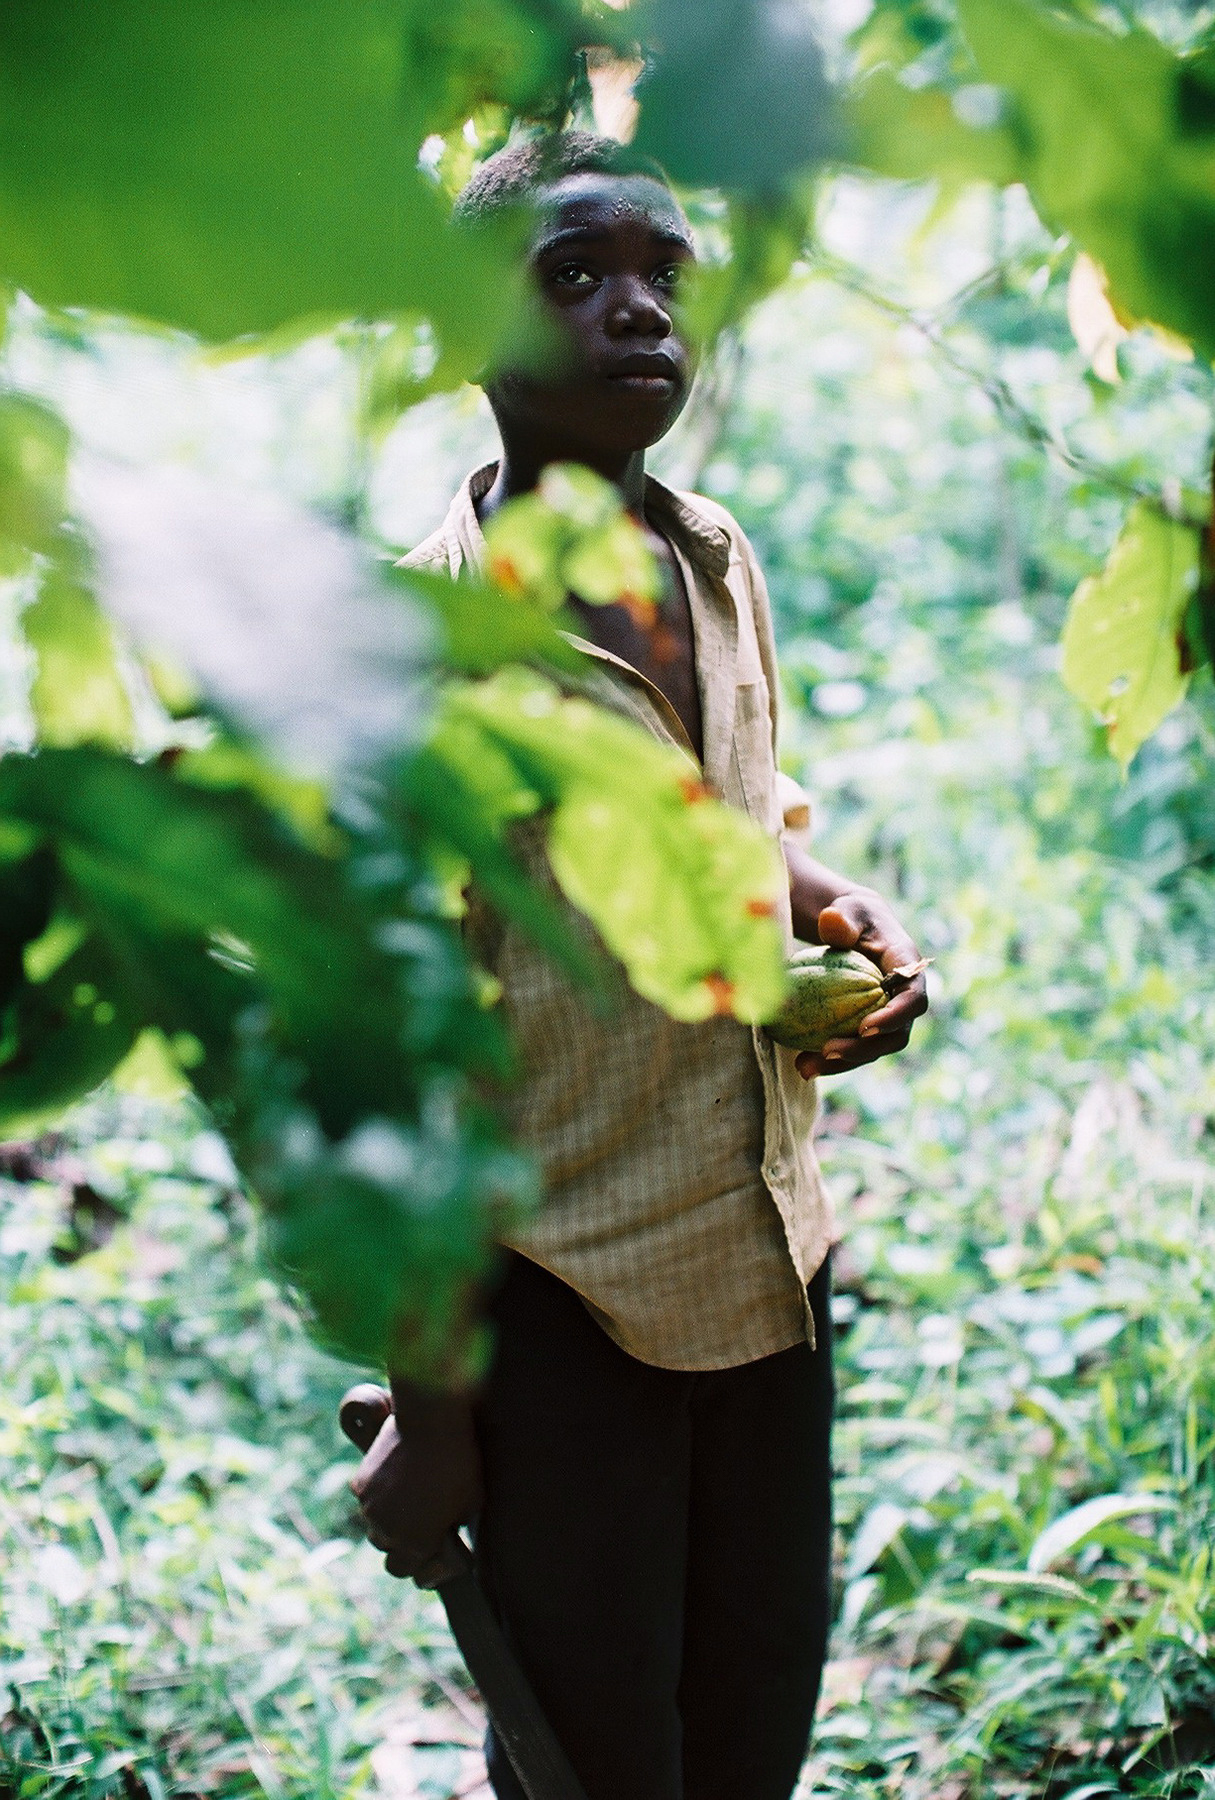 Mousso Ouedrago Holding Machete And Cocoa Pod